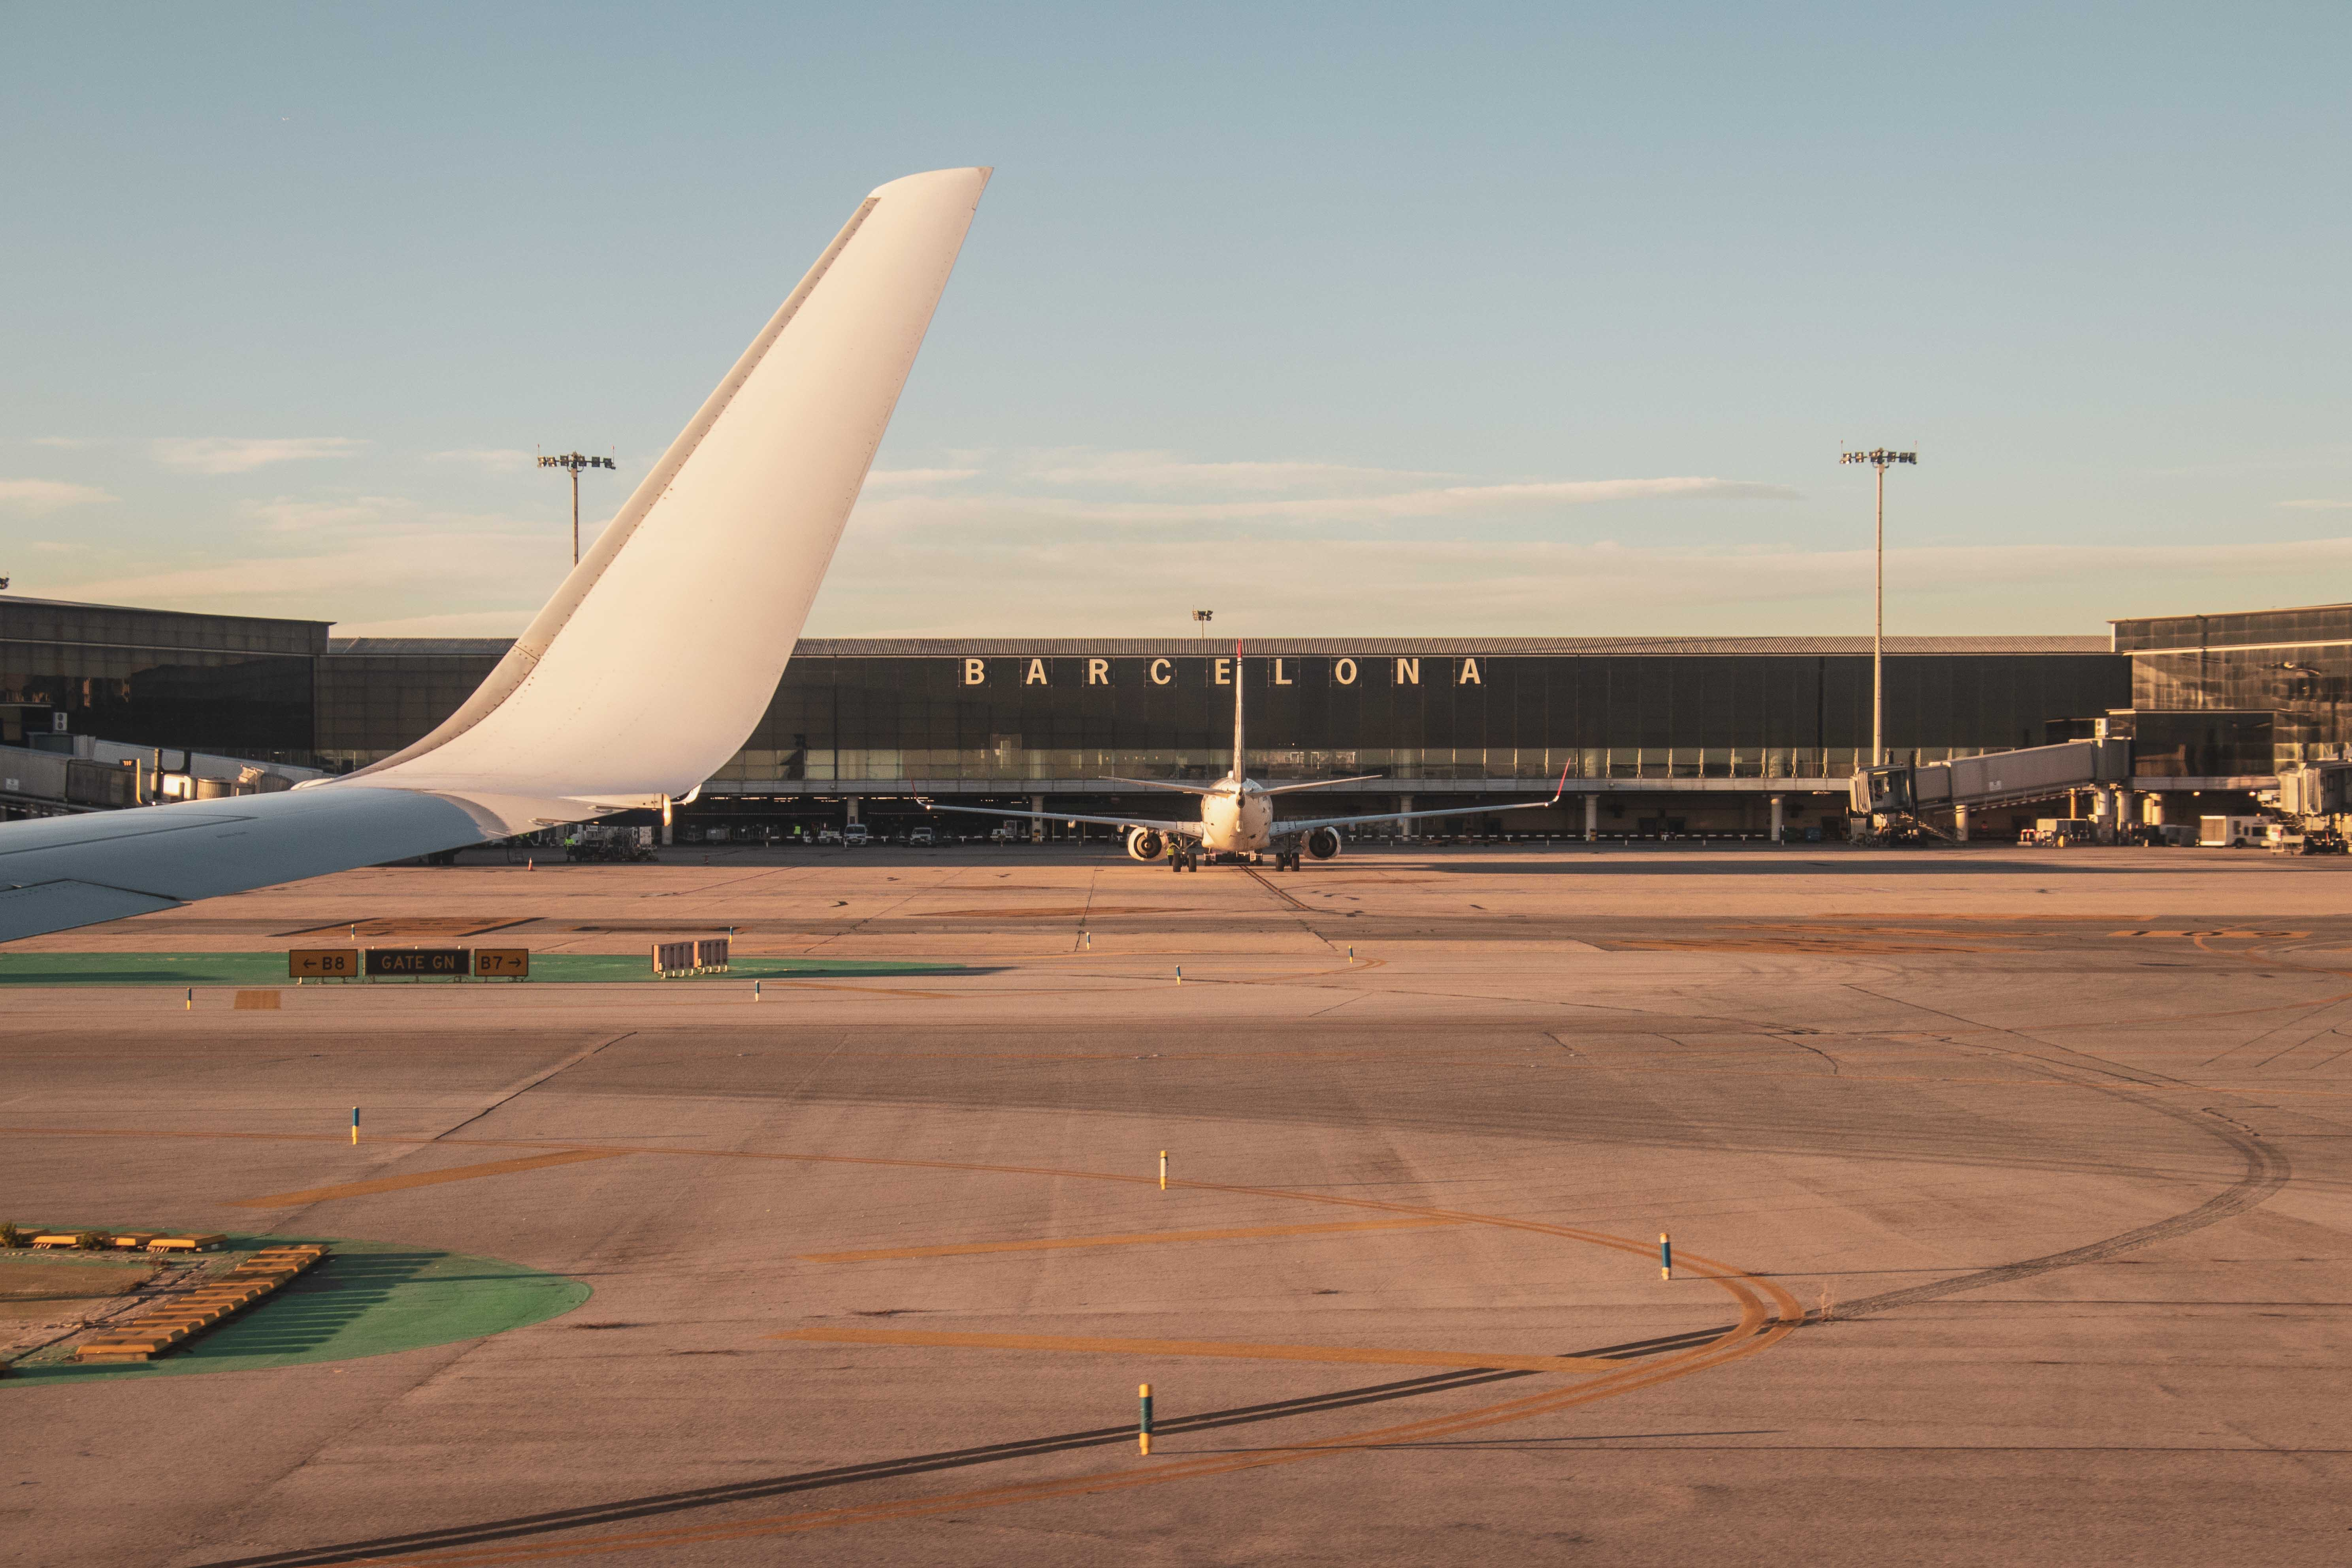 airplane in Barcelona airport